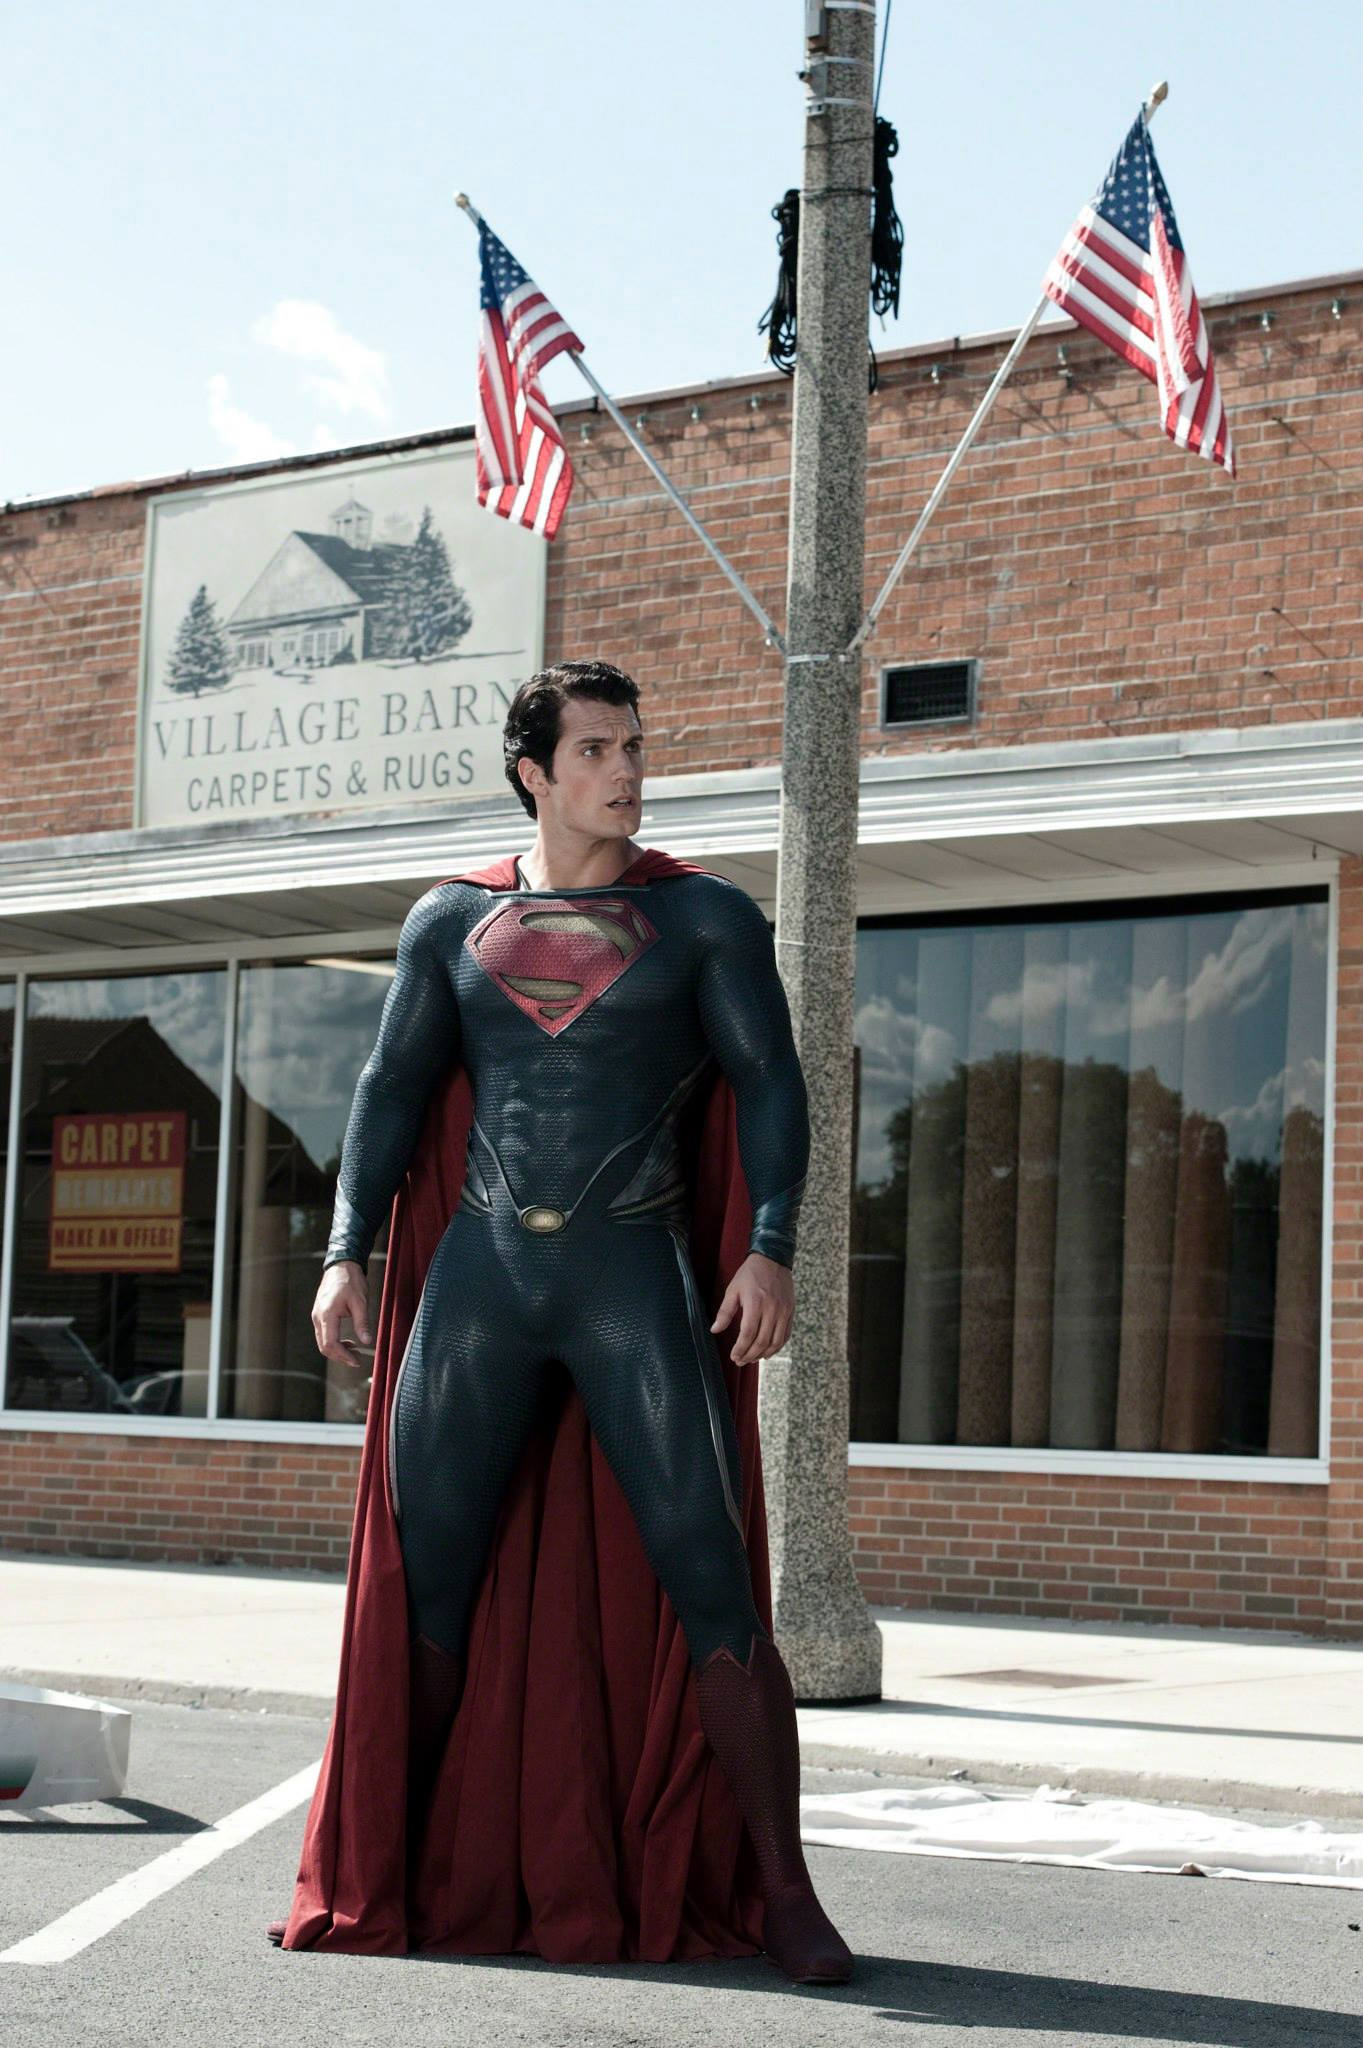 dc-comics-claims-they-sell-more-movies-than-marvel-in-letter-to-7th-grader.jpg